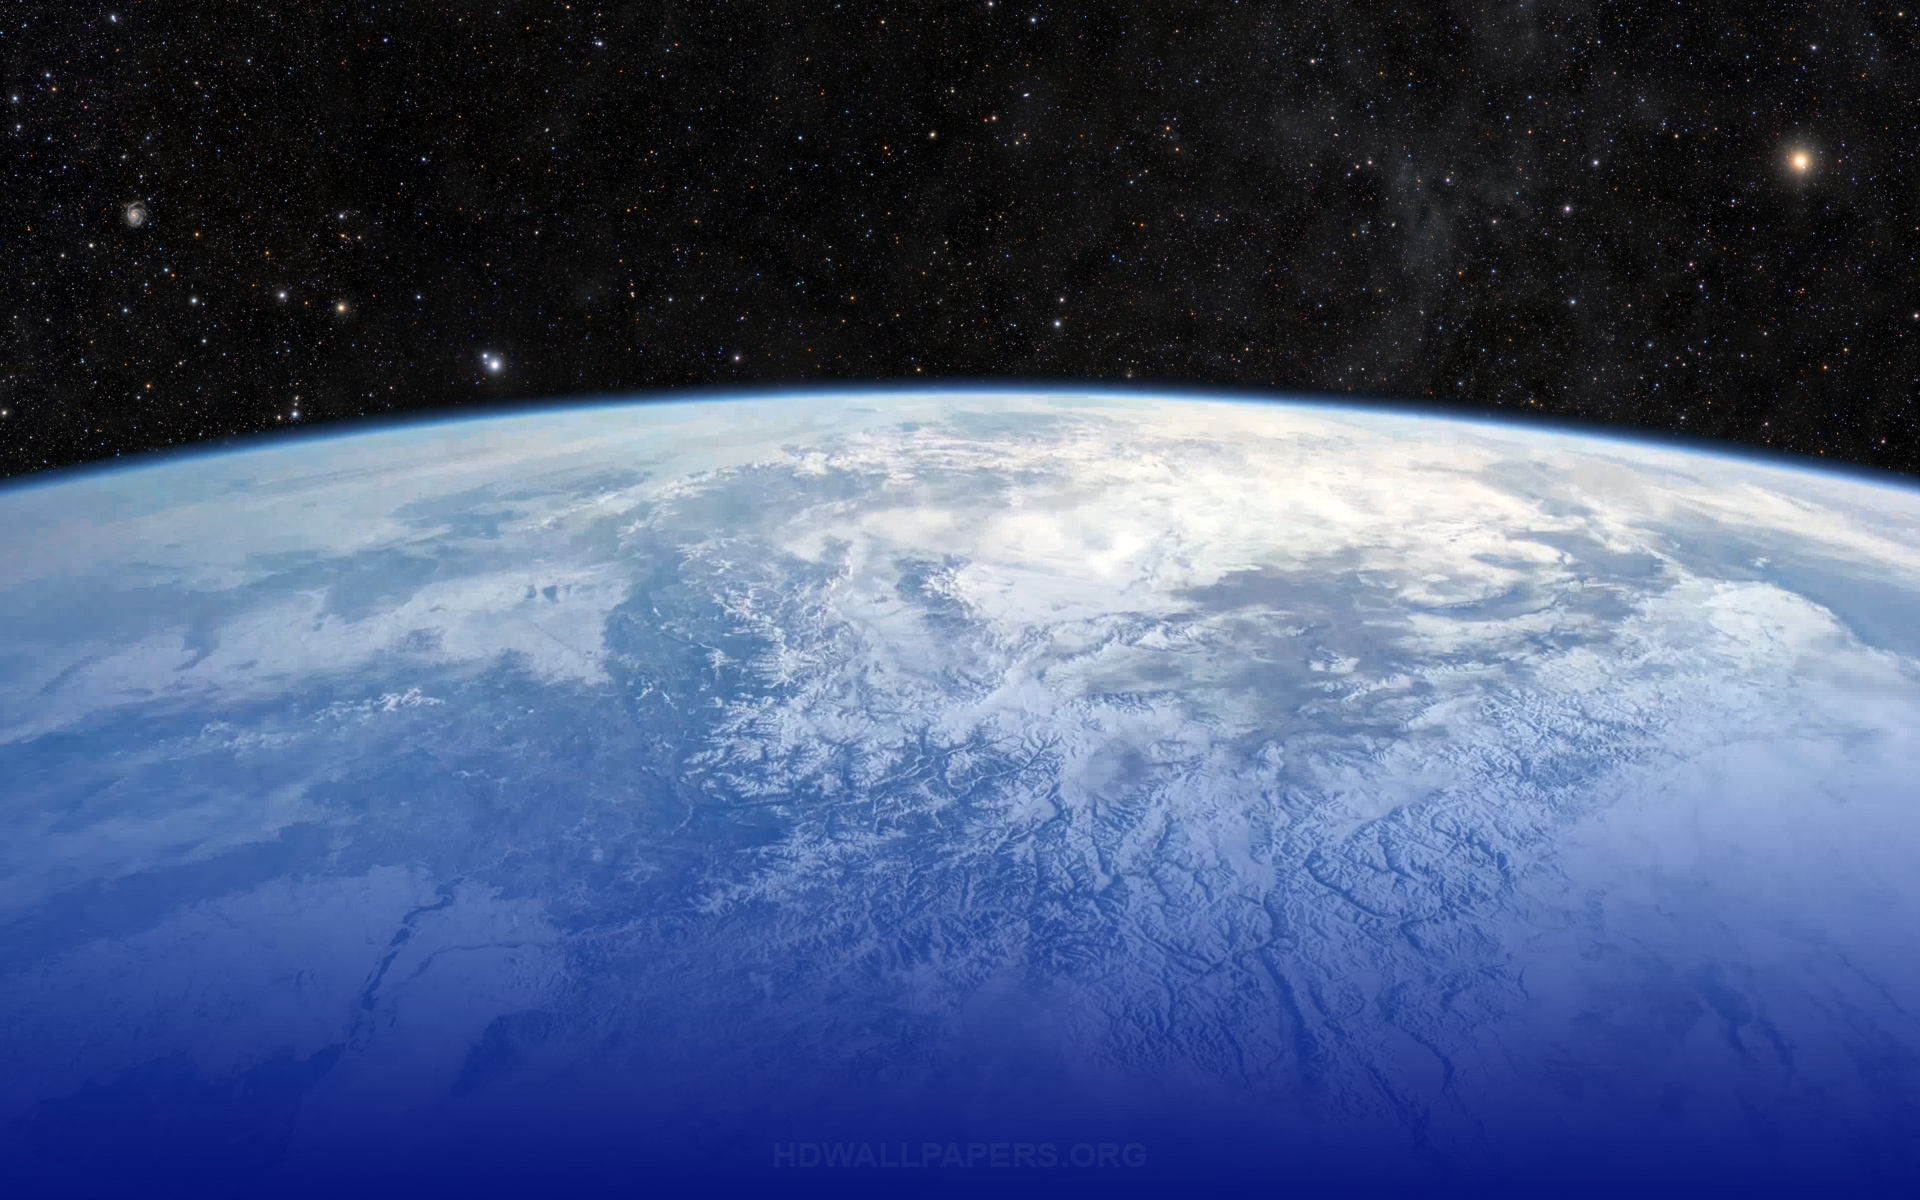 Earth Mountains From Space HD Wallpaper 1920x1200